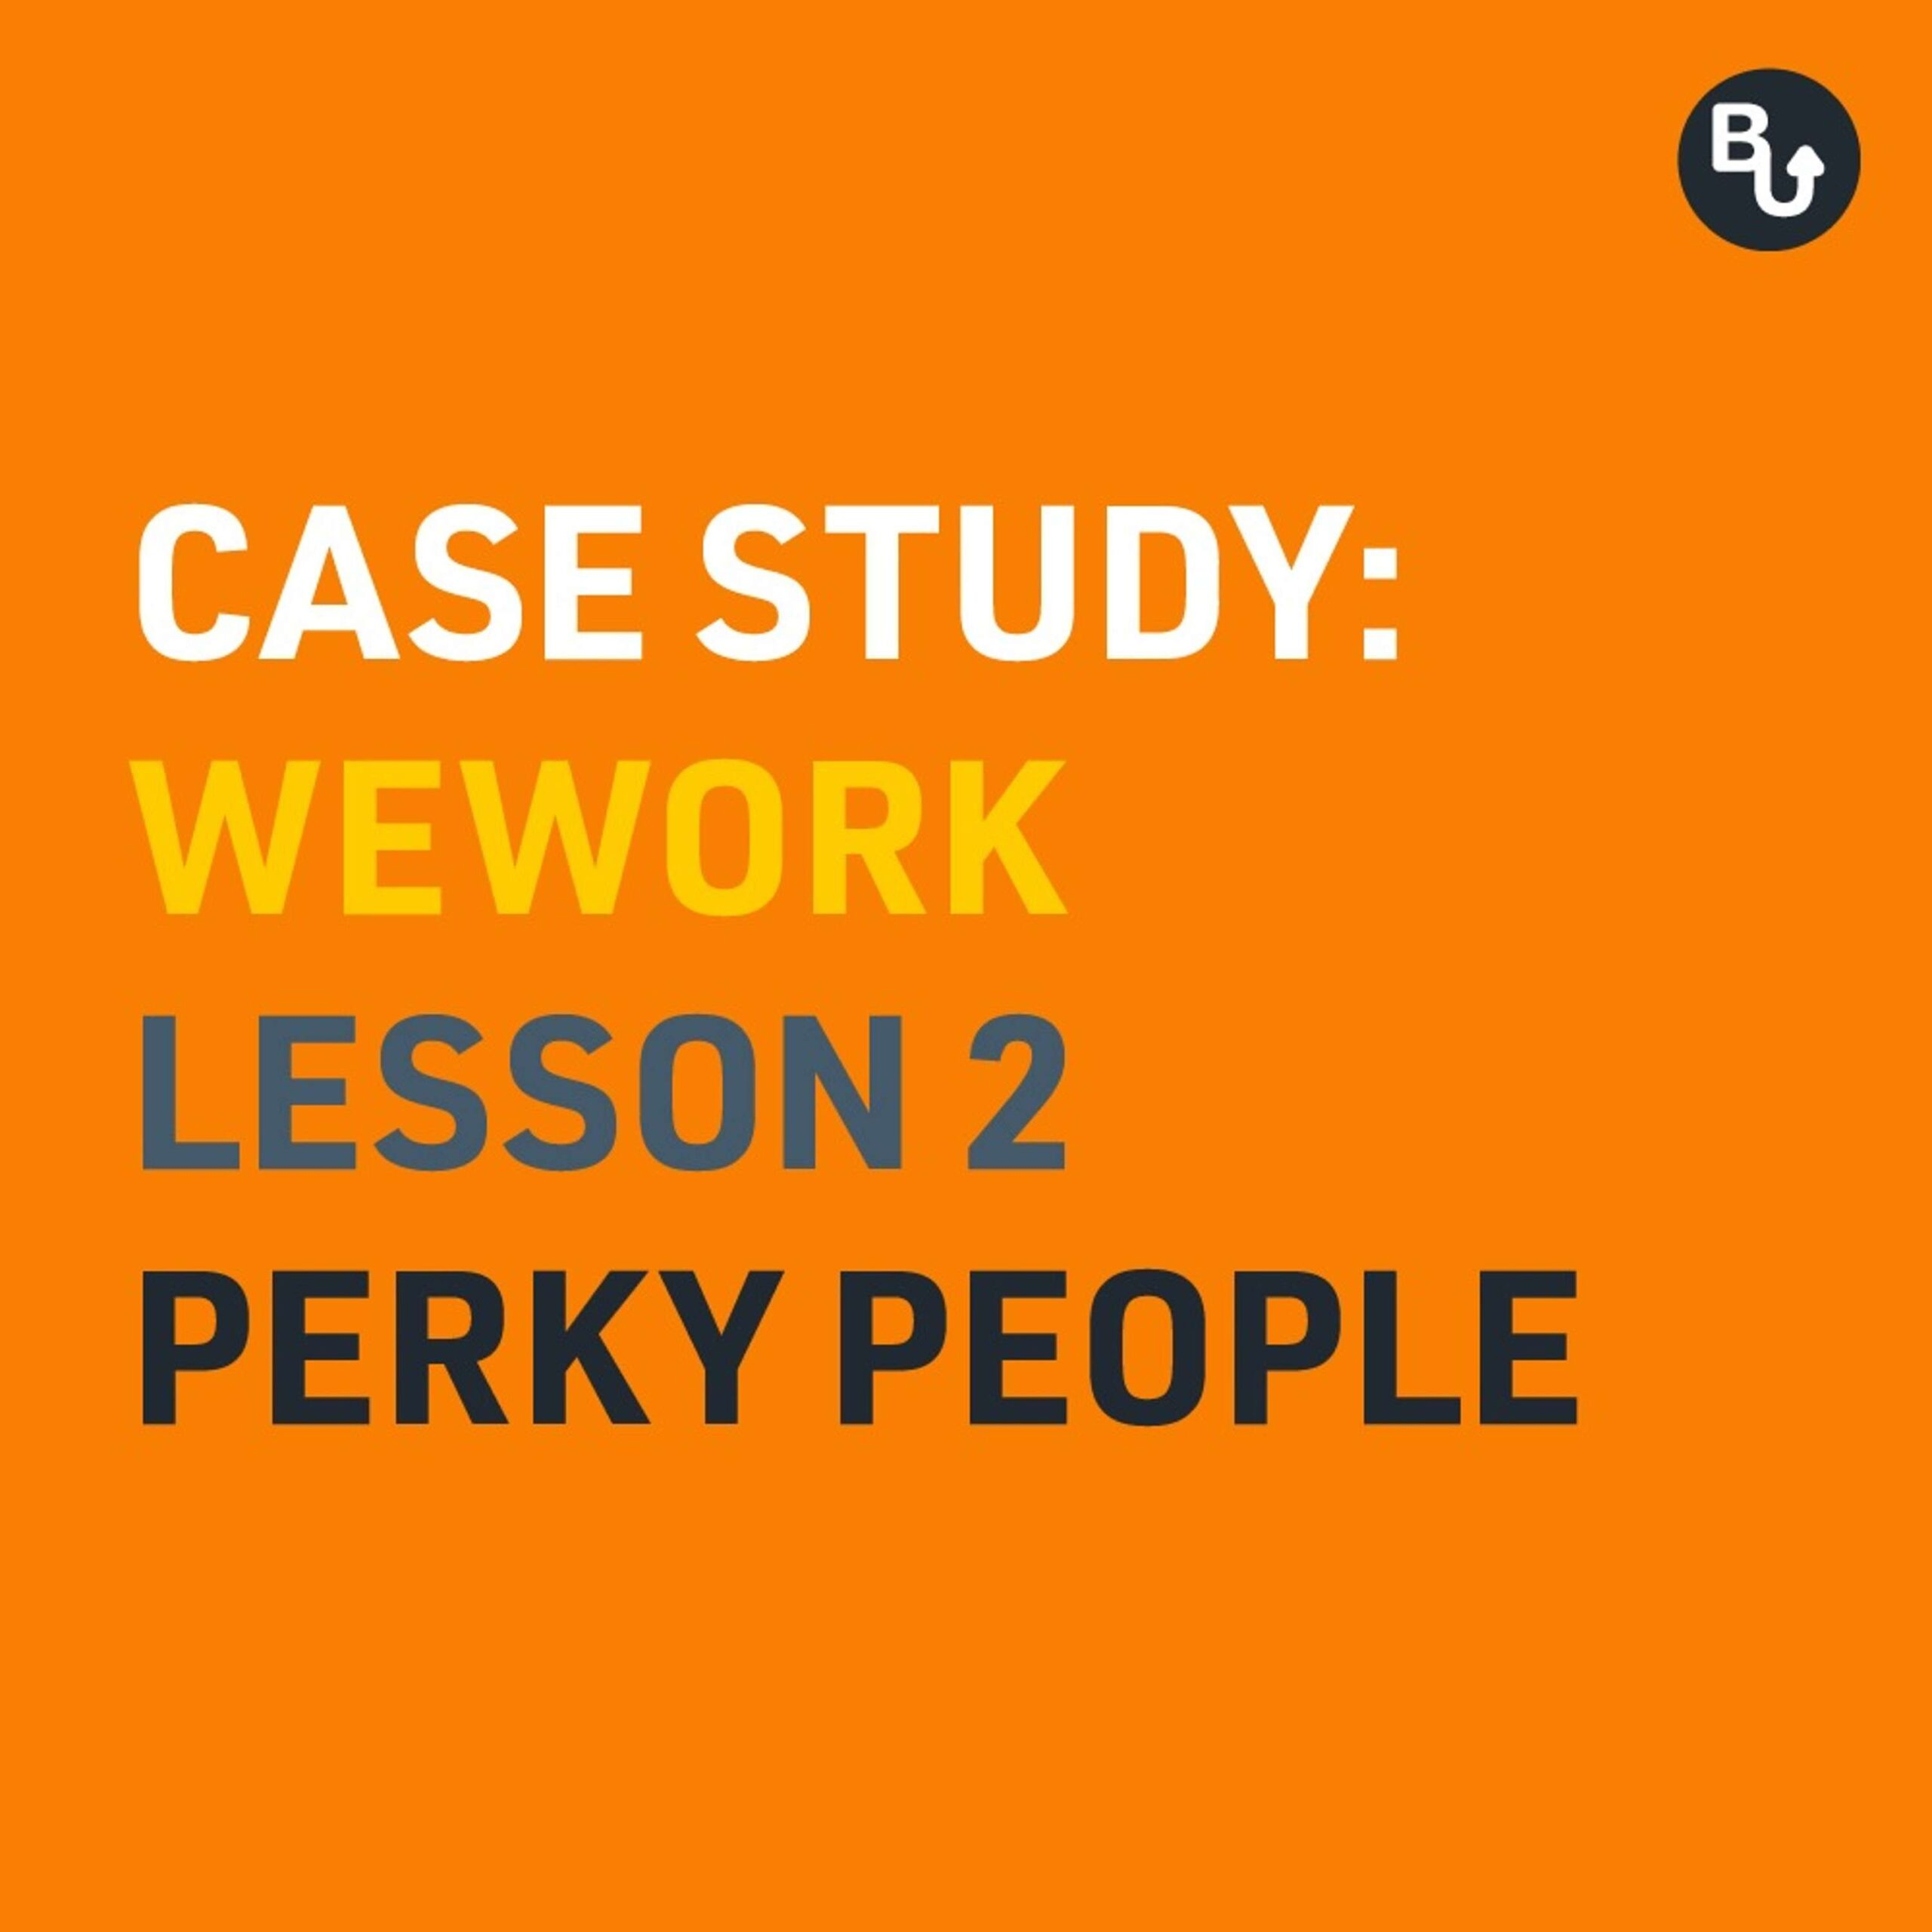 Learn how WeWork created a great team - People